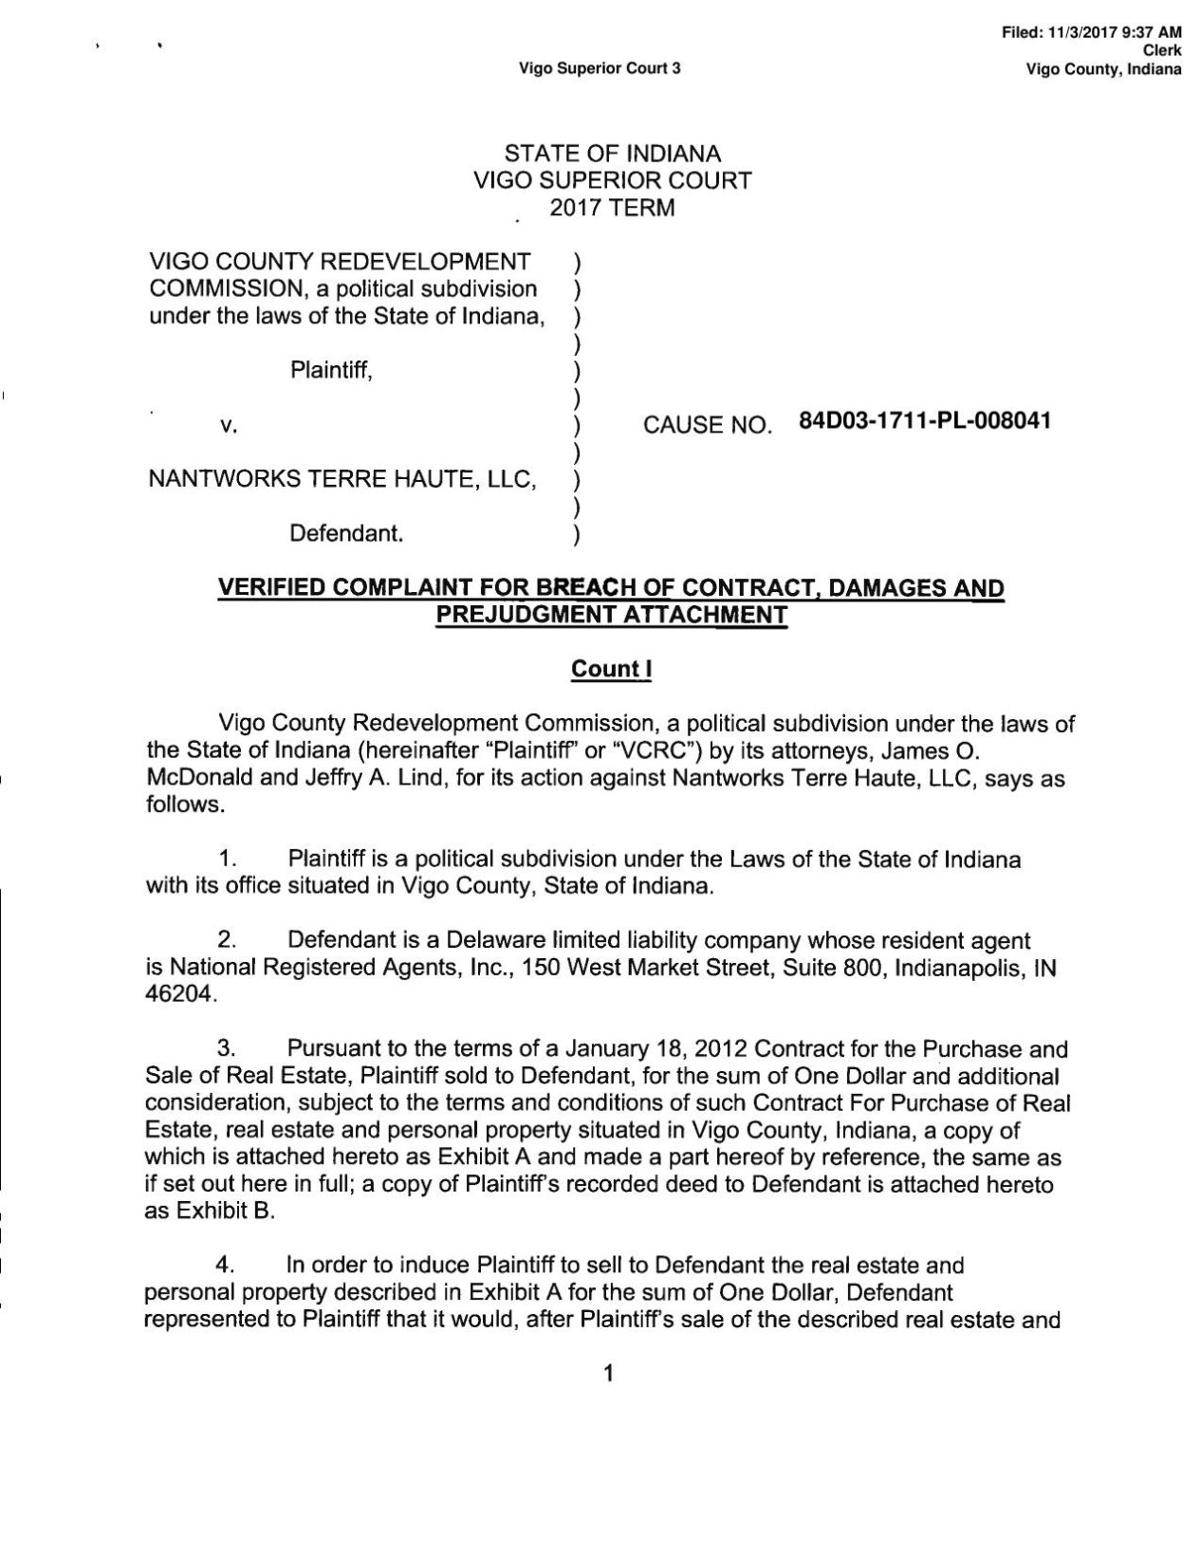 Breach of contract complaint pdf